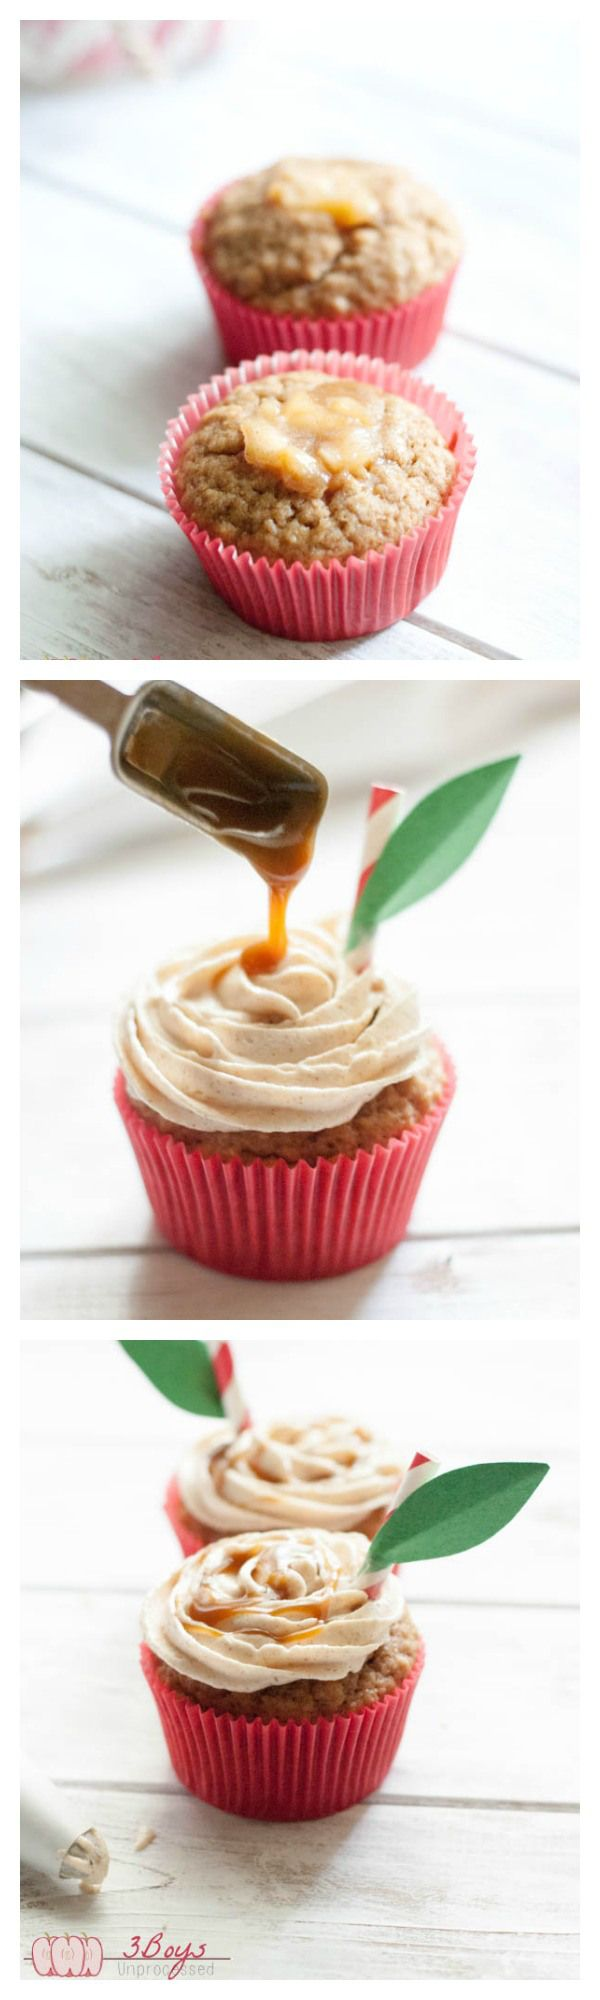 The Delicious Flavors of caramel and apple come together into one awesome Caramel Apple Cupcake that makes the perfect fall treat.